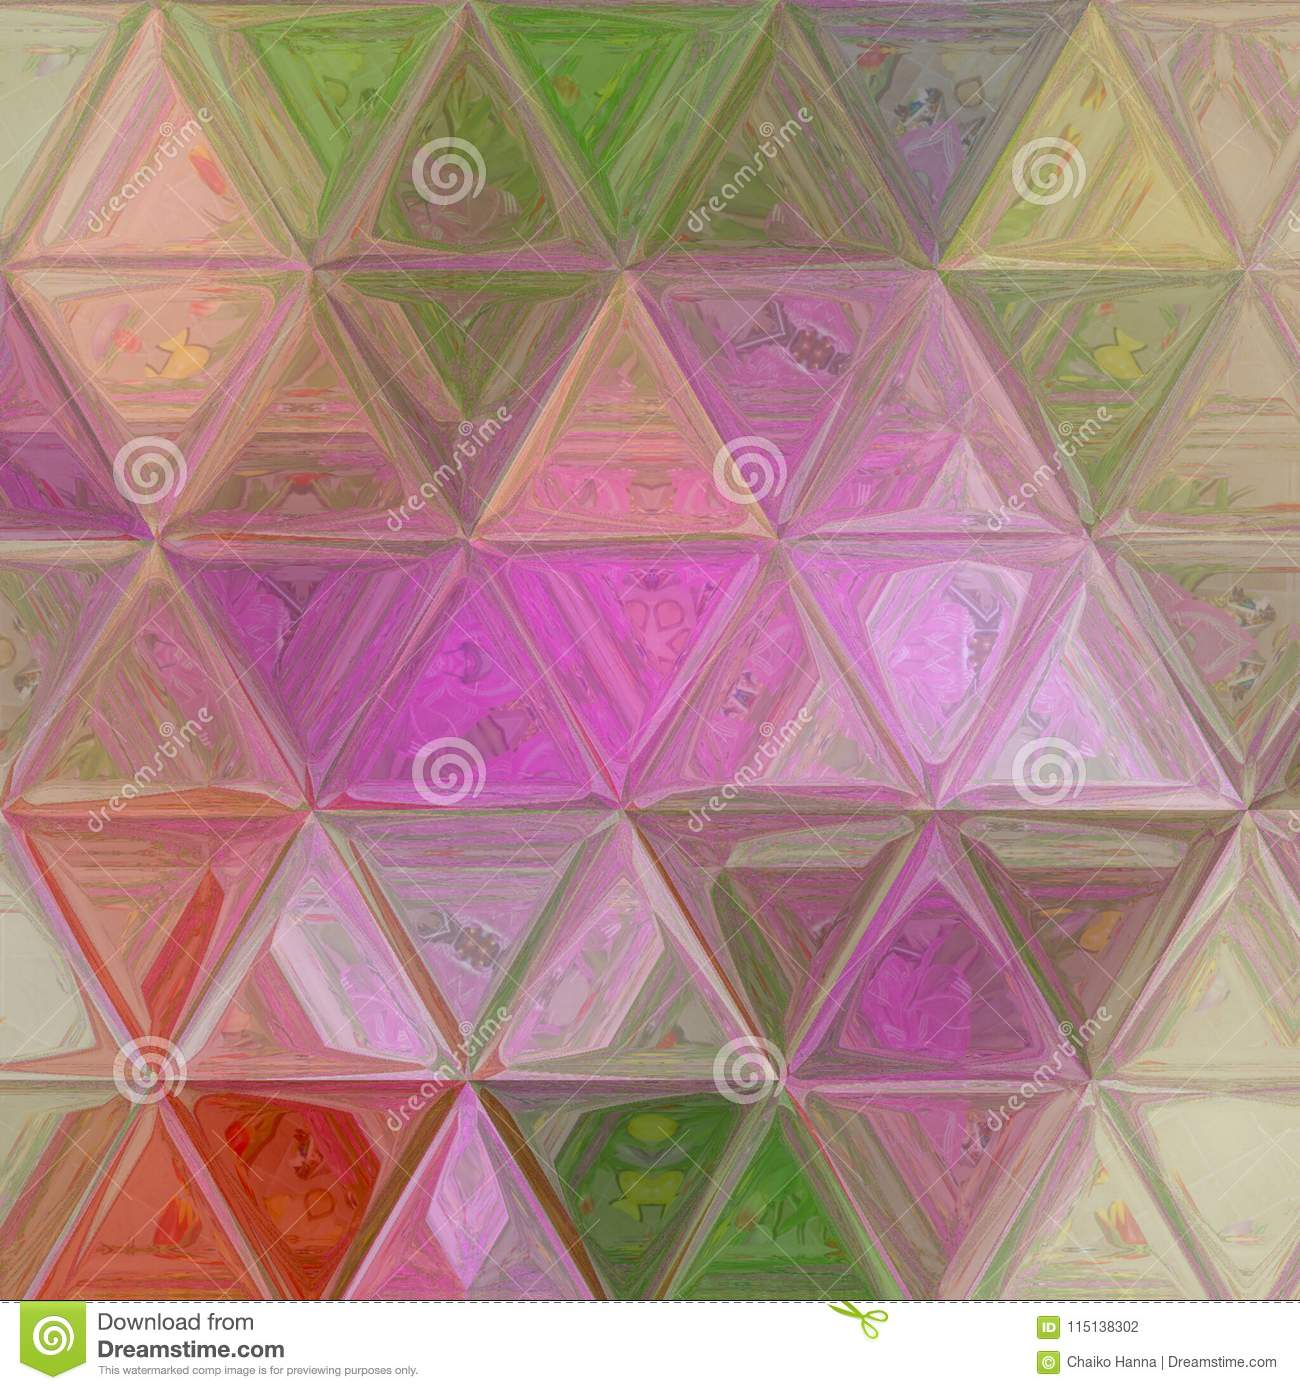 Download Tender Triangle Pastel Texture In Violet, Beige, Green Colors For  Wallpaper, Textile